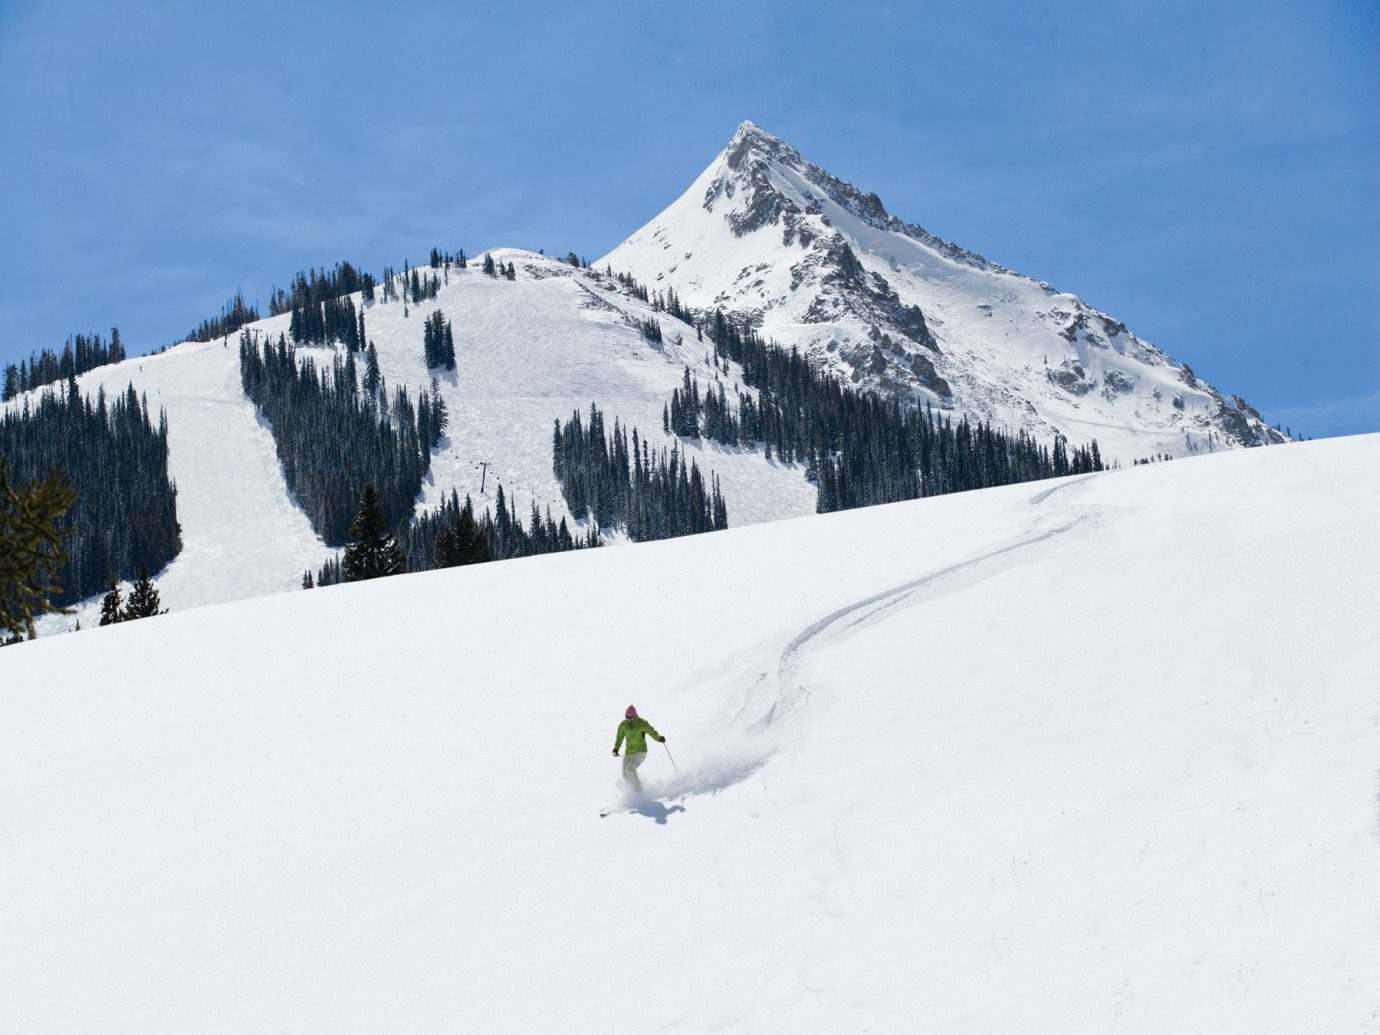 Man skiing at Crested Butte